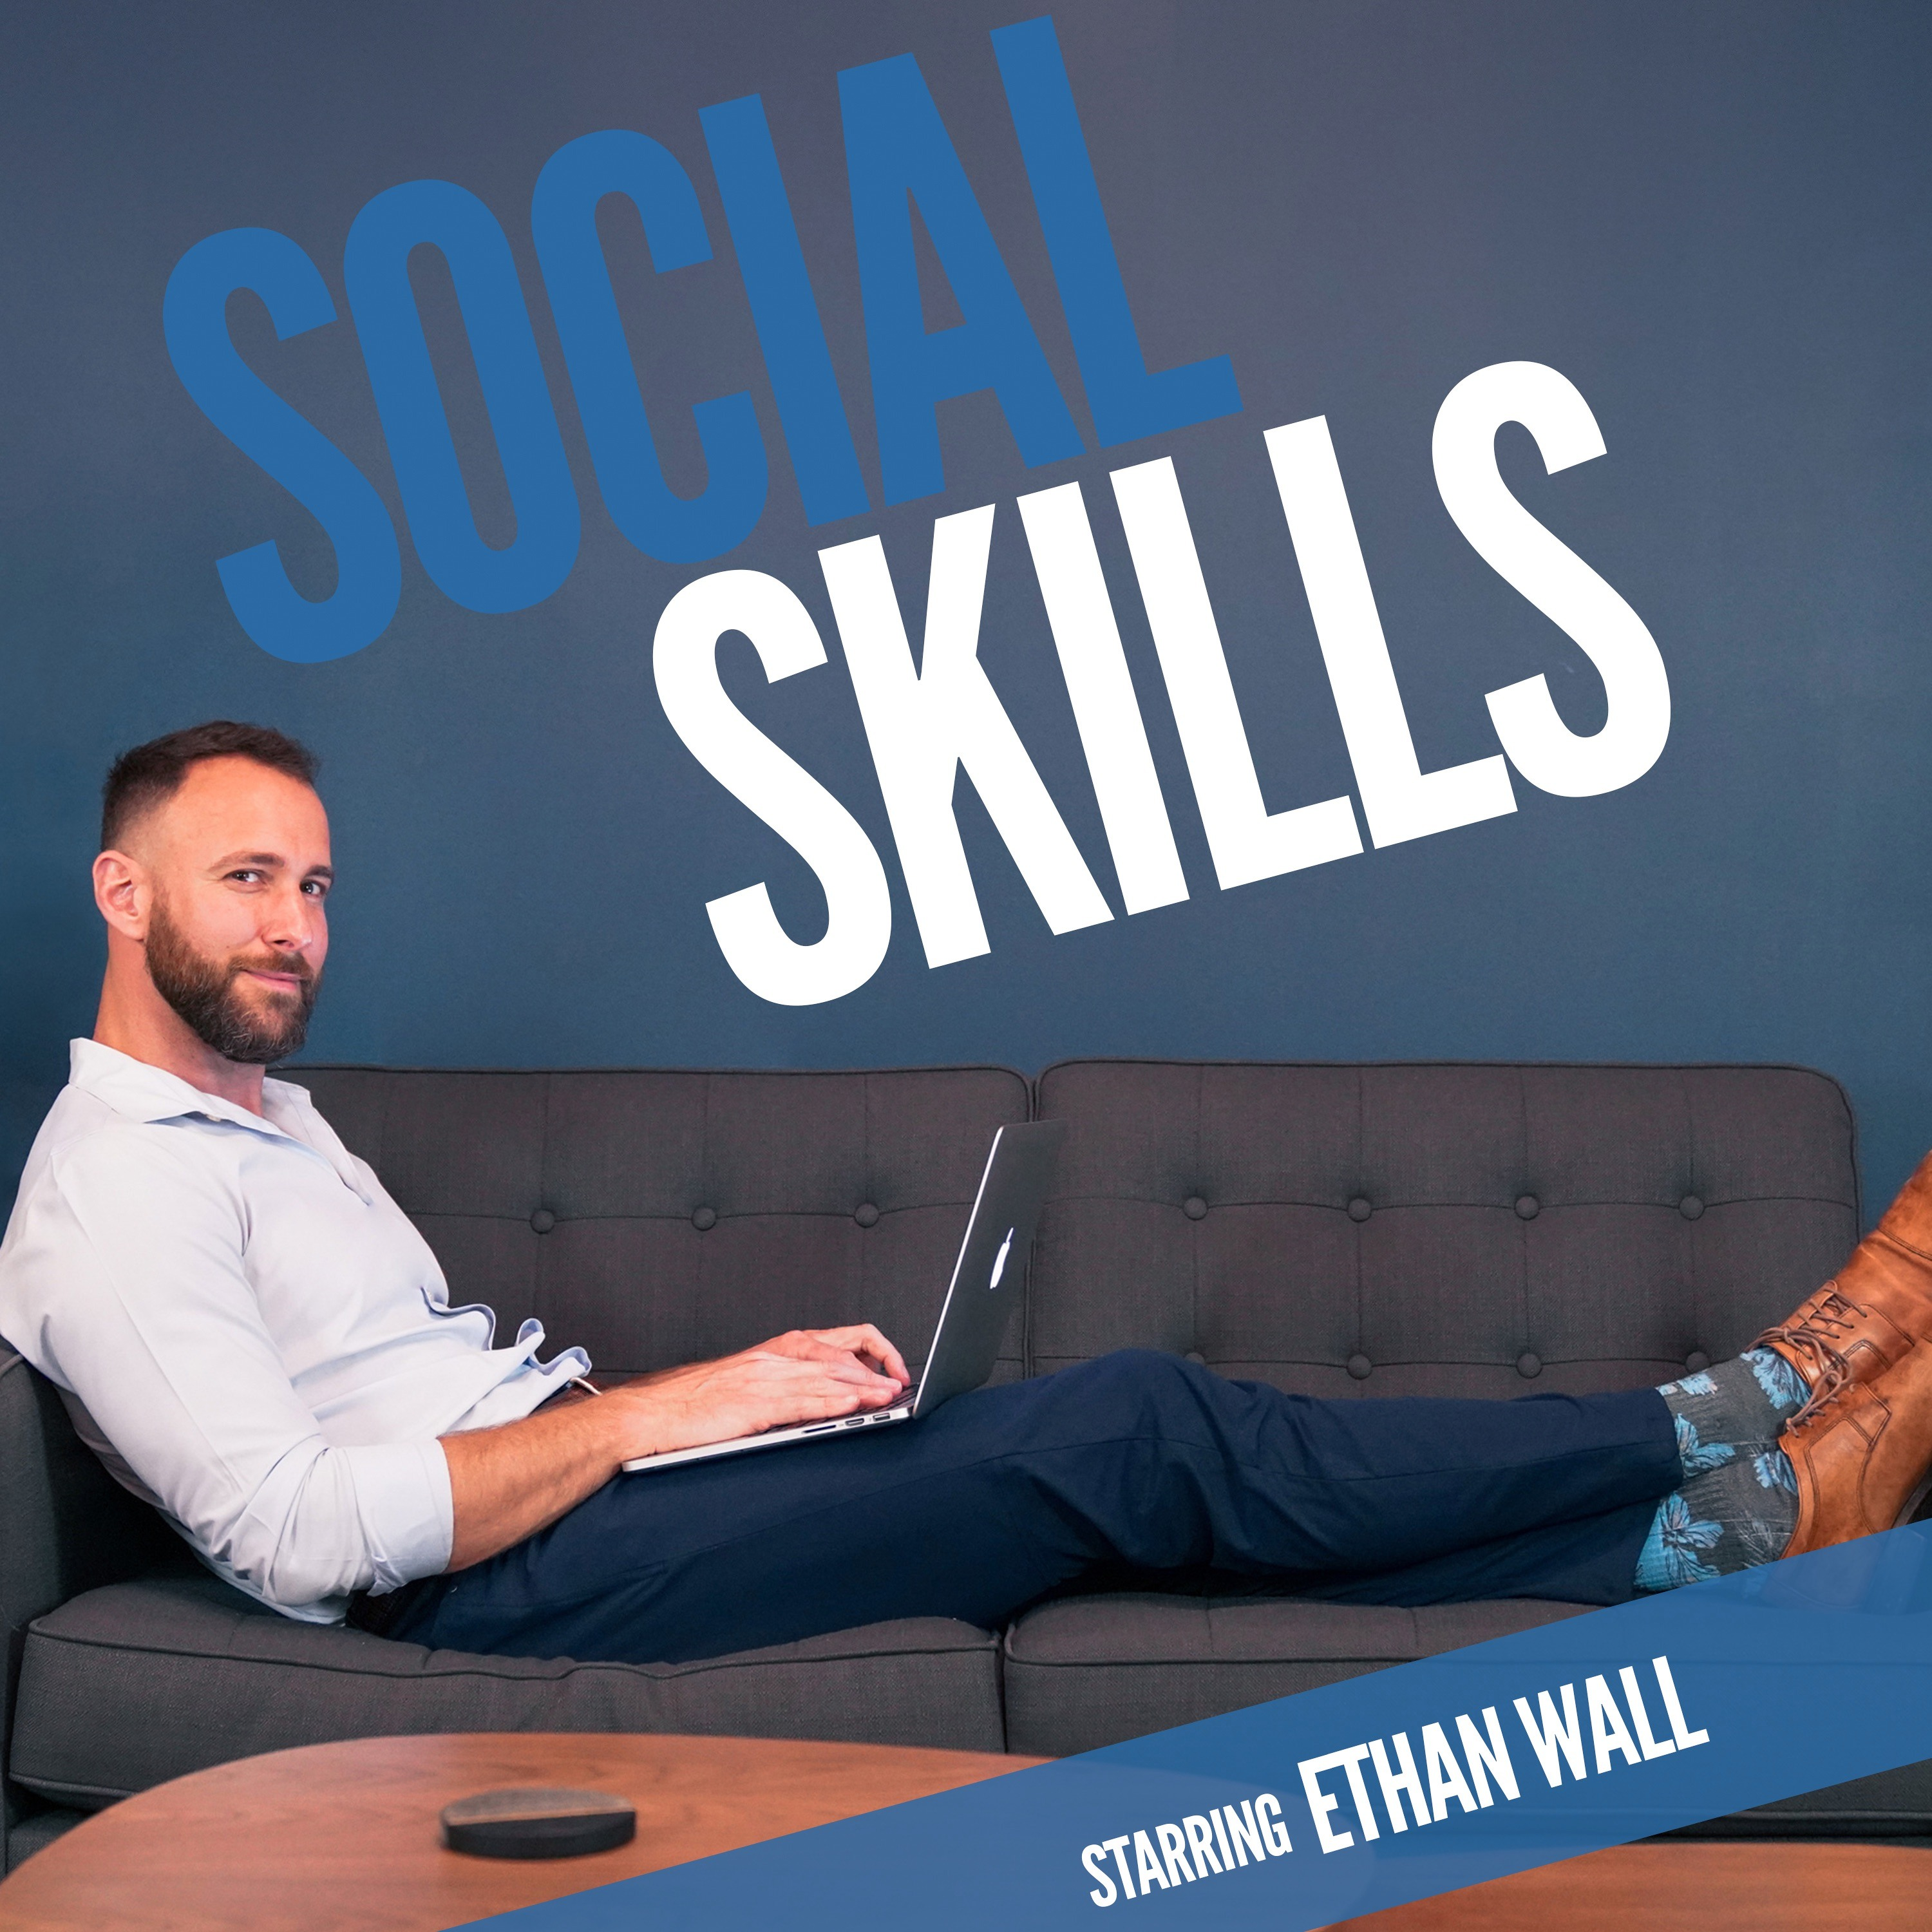 Episode 3 - What Should Lawyers Post on Social Media?